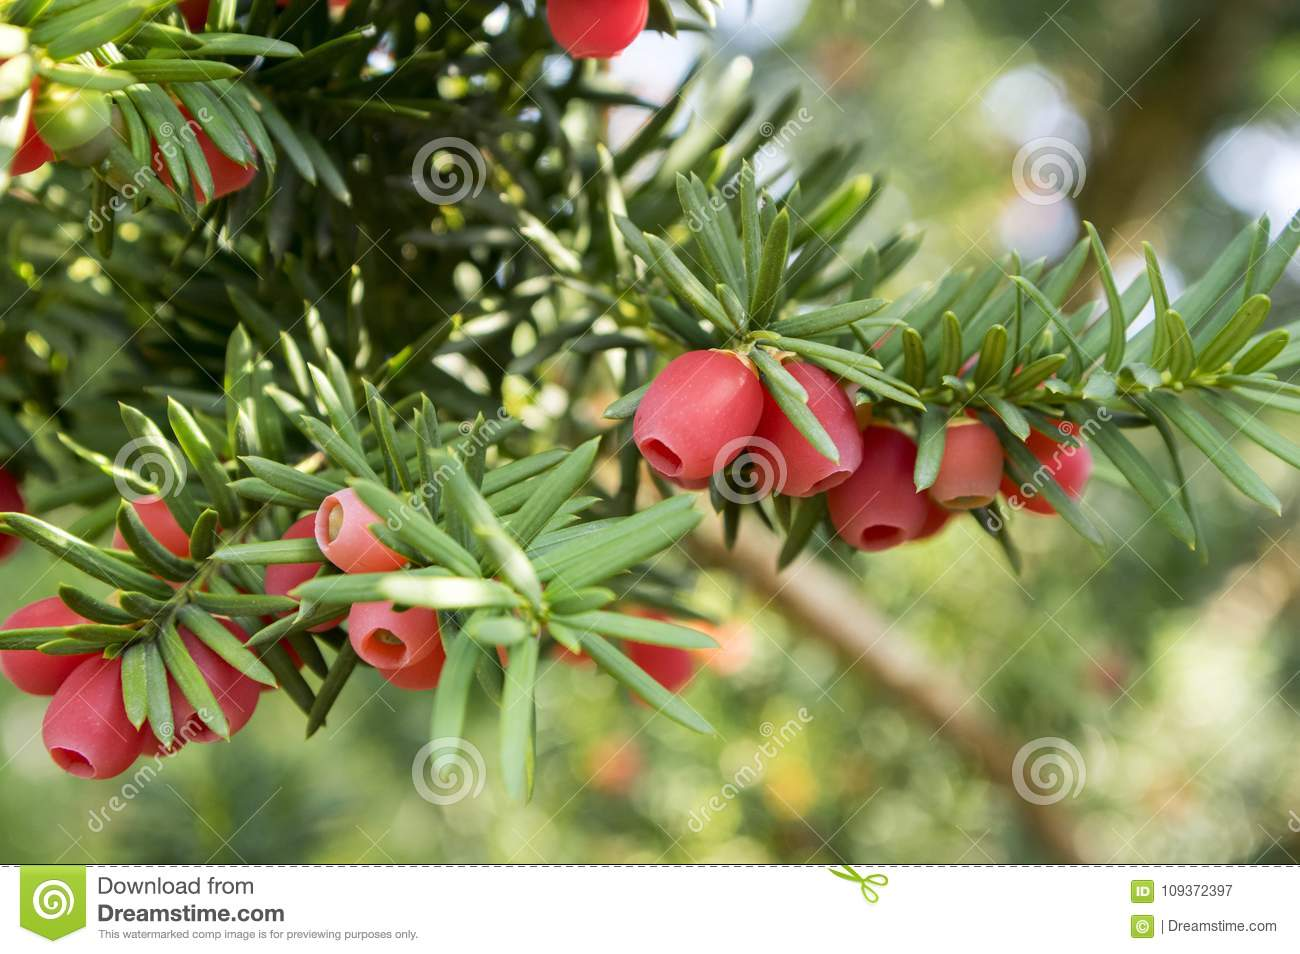 taxus baccata european yew is conifer shrub with poisonous and